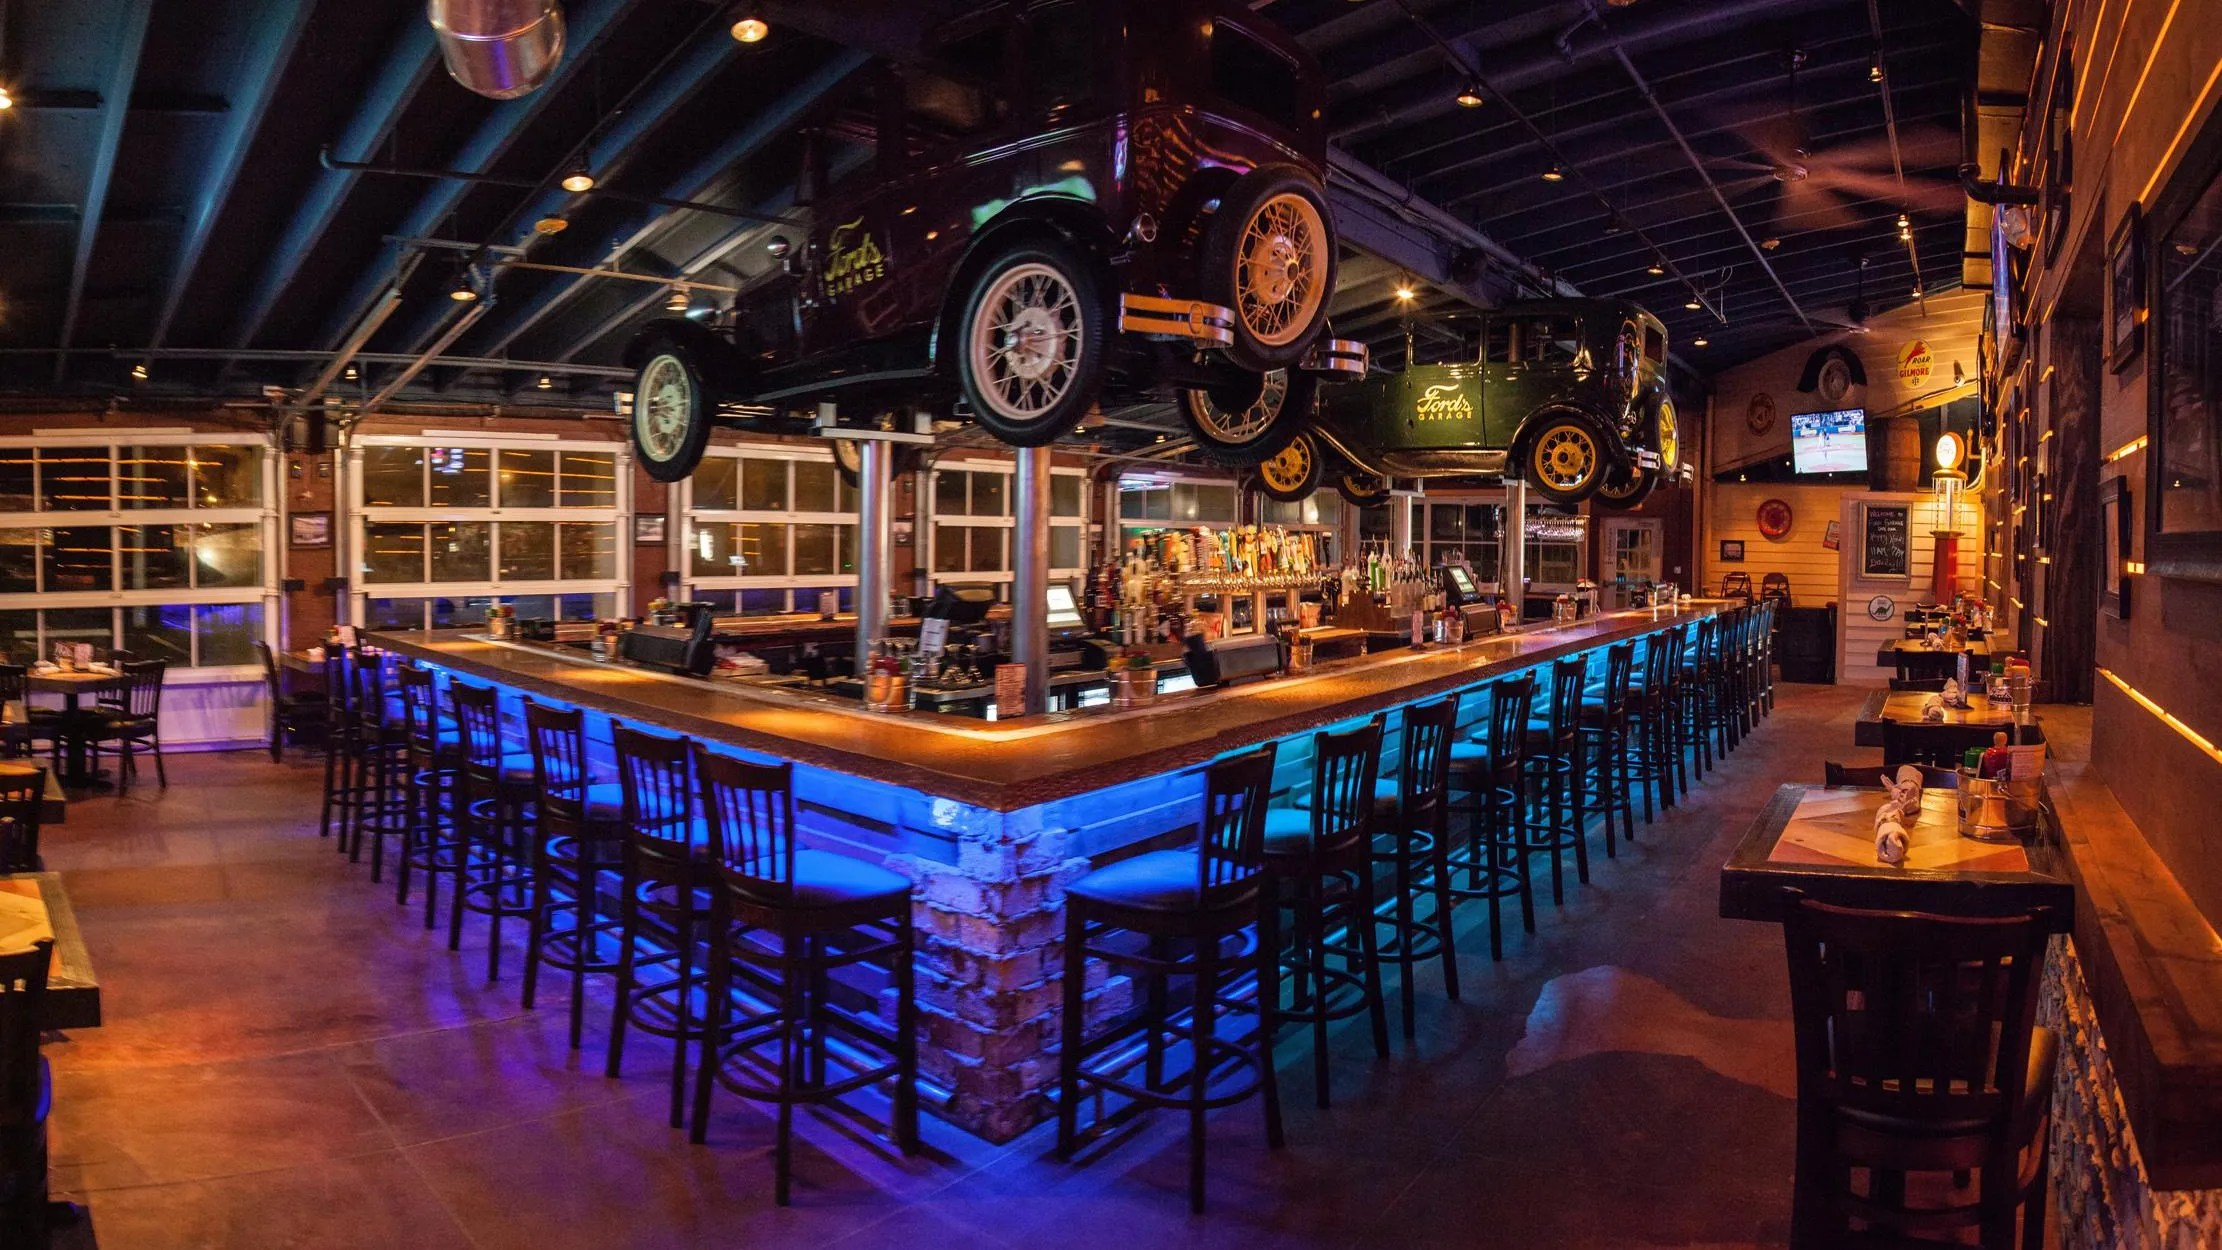 Fords Garage restaurant coming to Dearborn